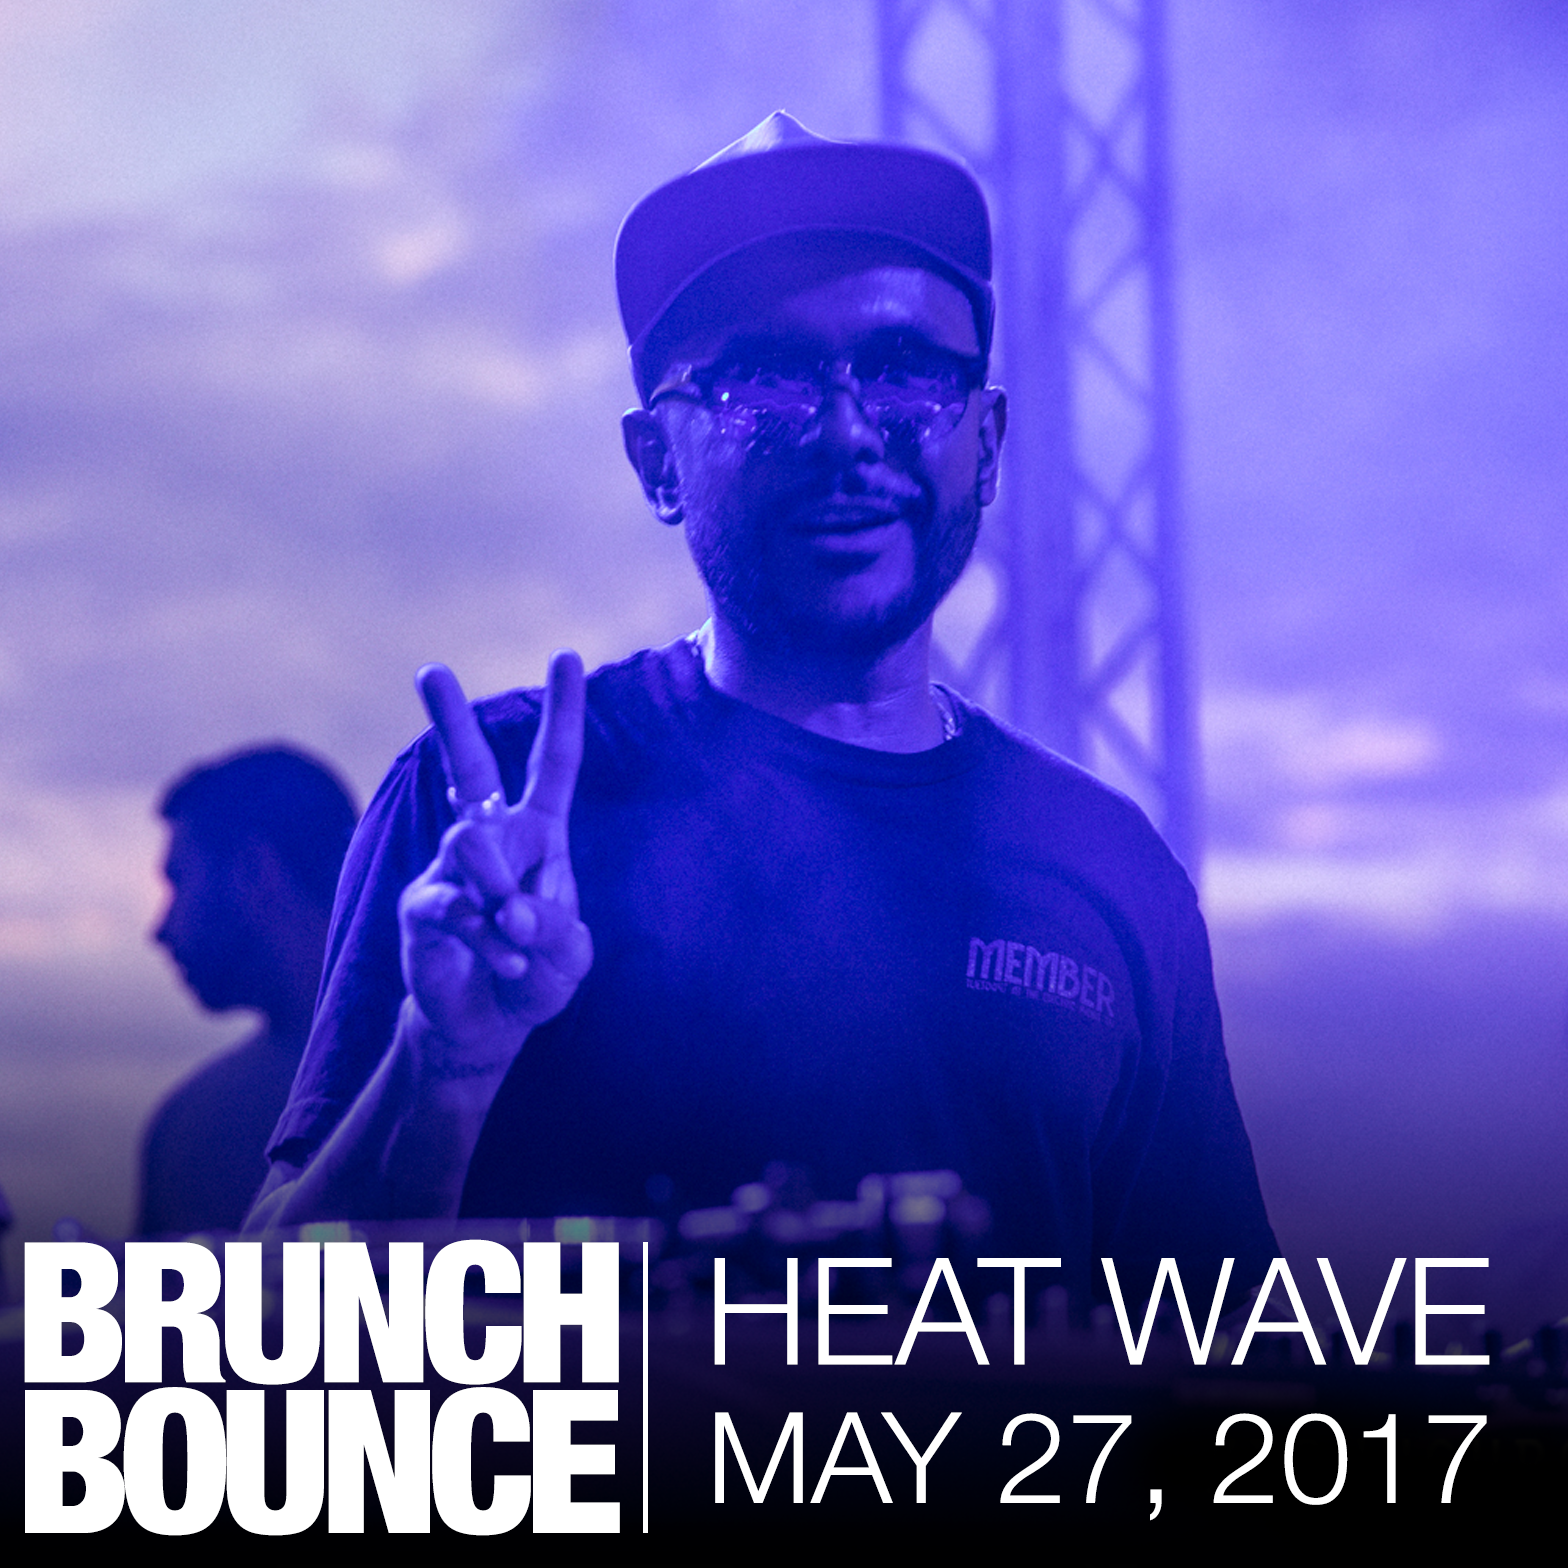 Brunch Bounce Heat Wave May 27, 2017